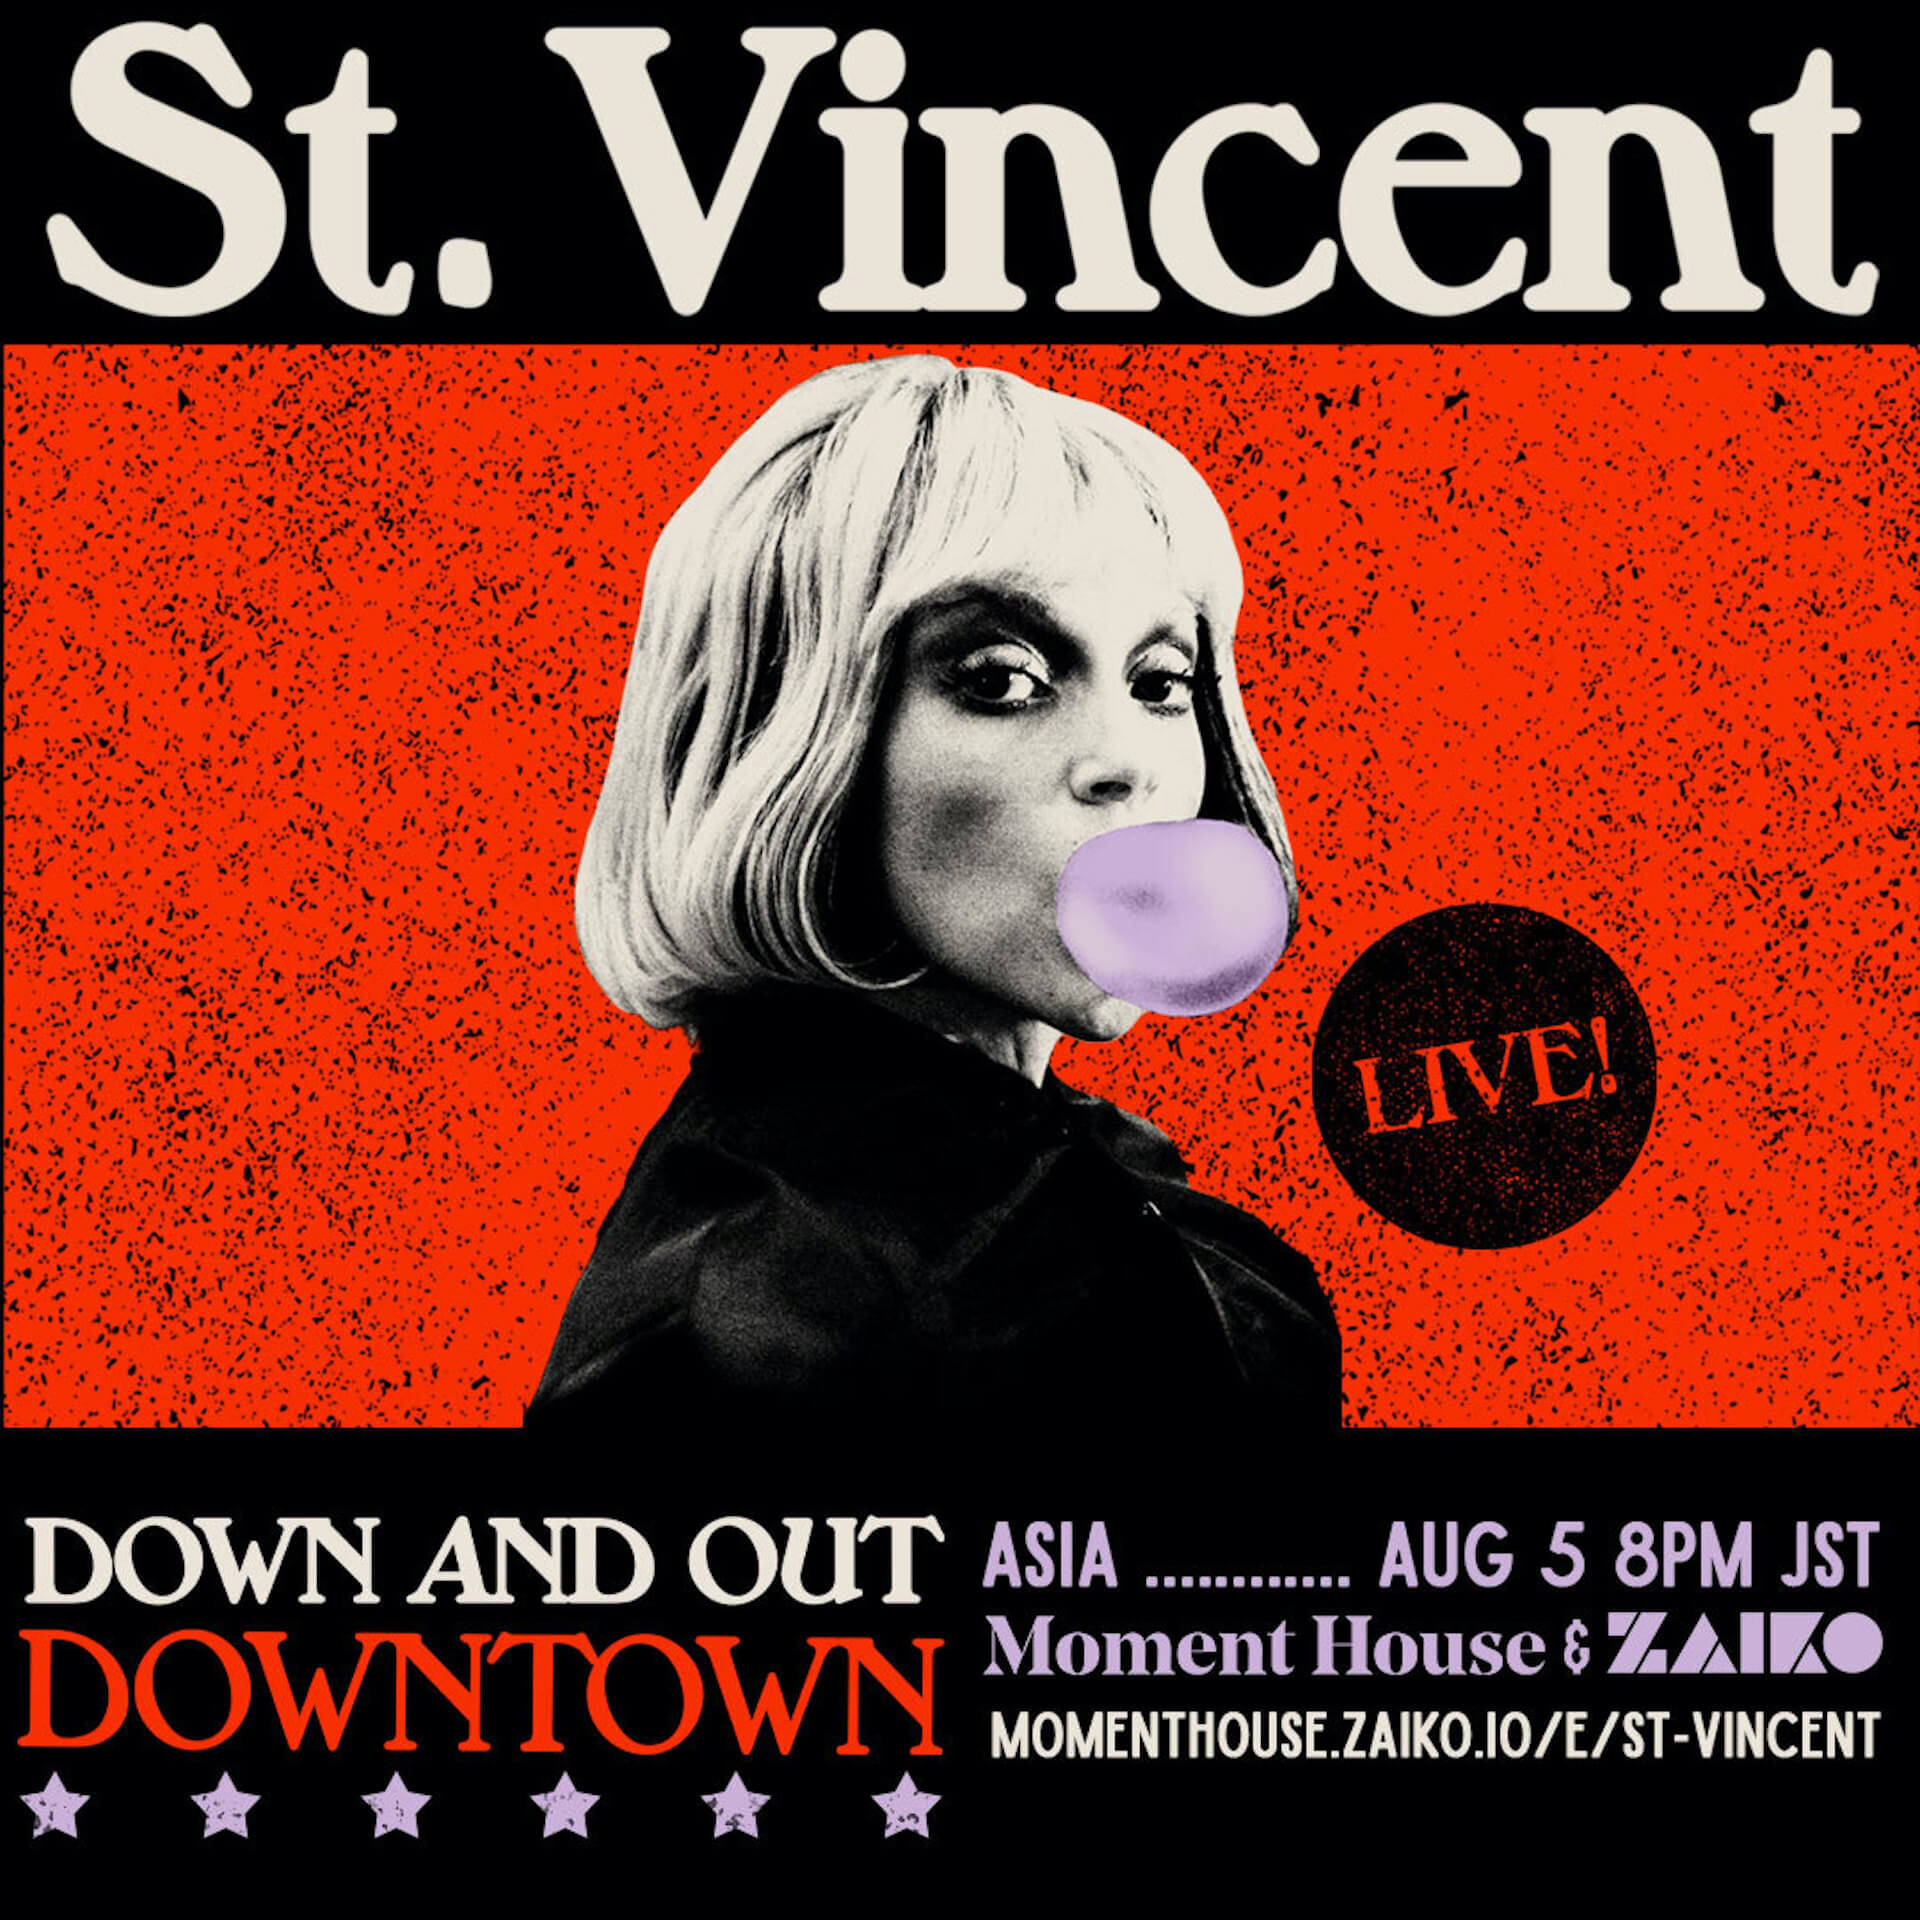 St. Vincent初のオンラインコンサート<DOWN AND OUT DOWNTOWN>が開催決定! culture_210714_St.Vincent3